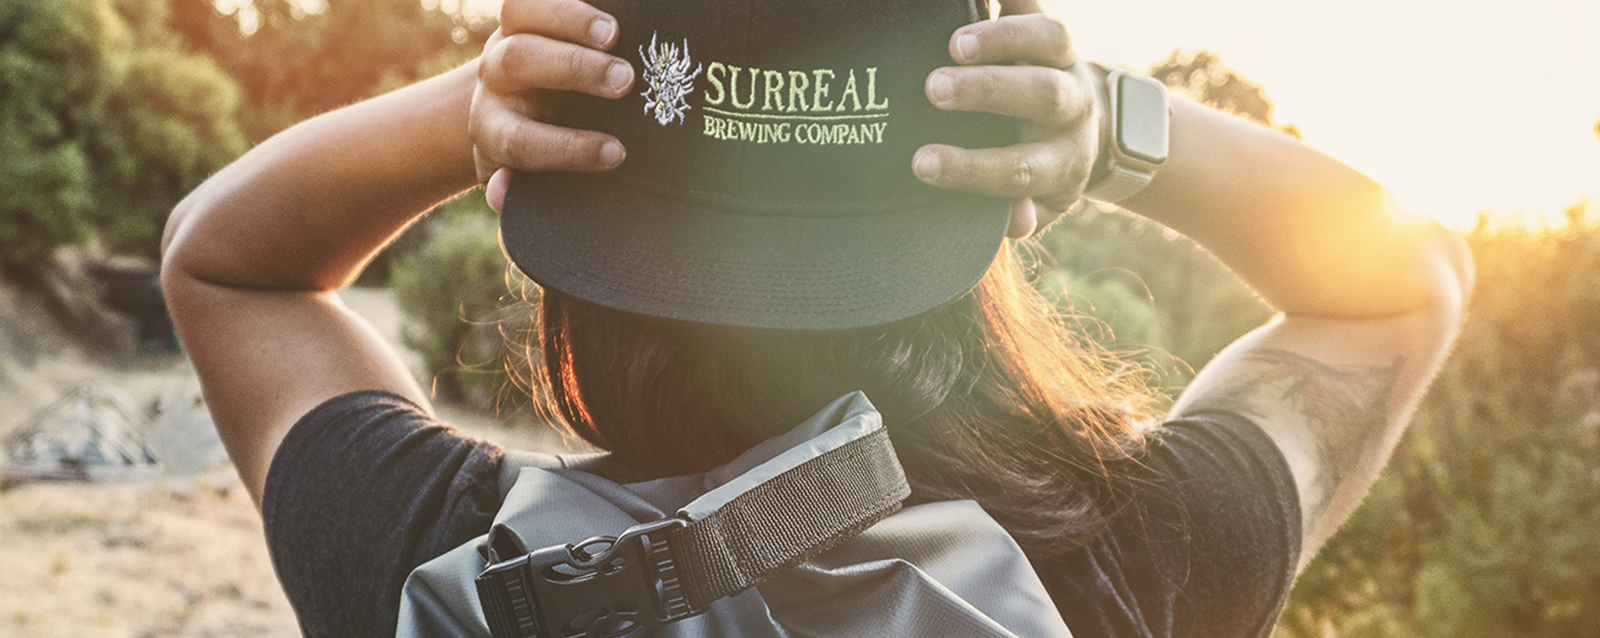 Girl holding Surreal Brewing Company Branded hat